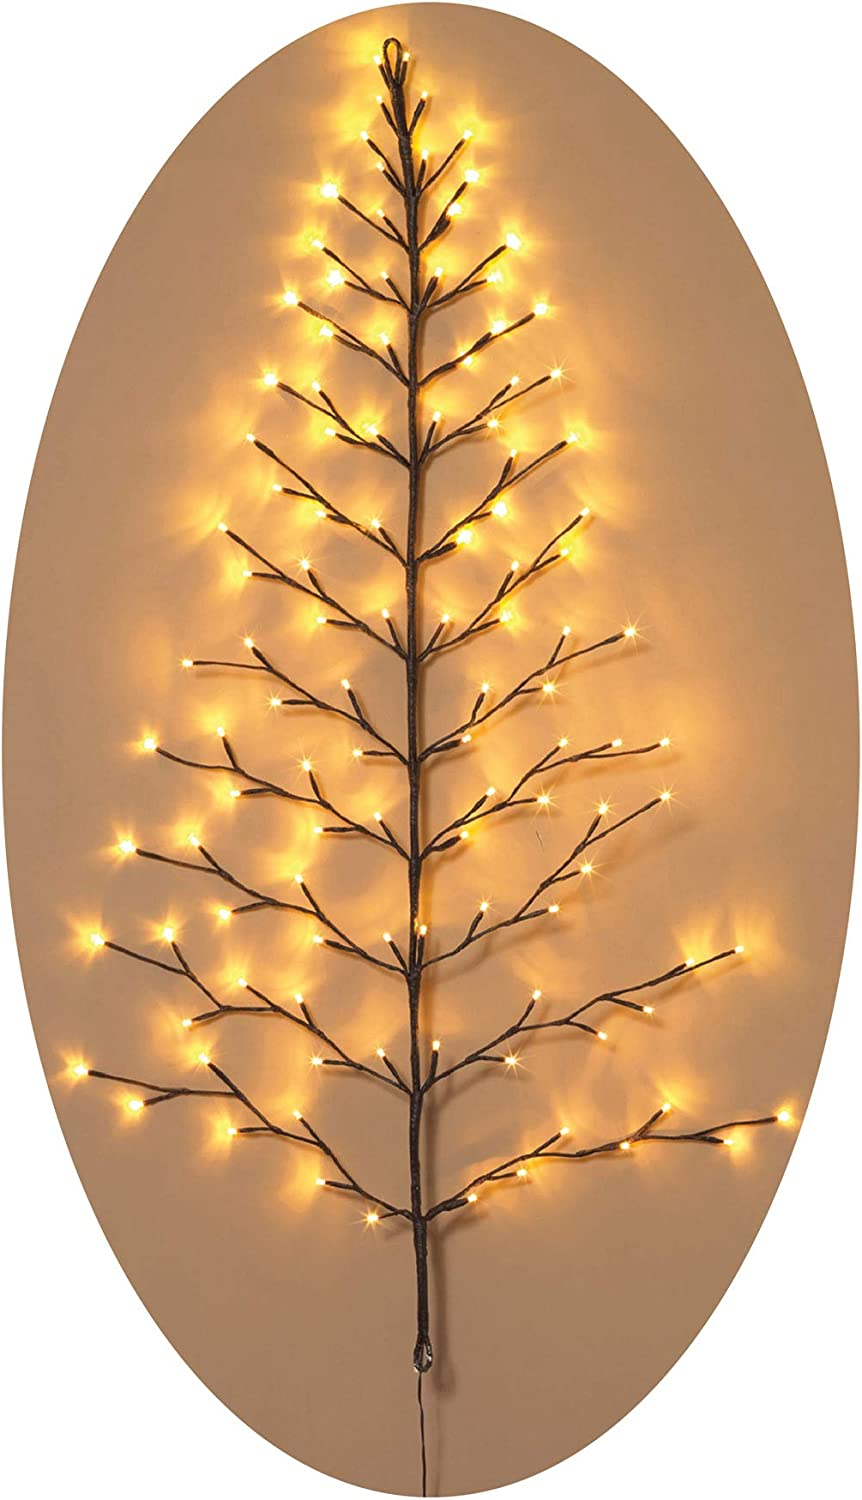 Ten Waterloo Lighted Christmas Wall Tree - Indoor/Outdoor LED 4 Foot High - Warm White Lights - Battery Operated with Timer